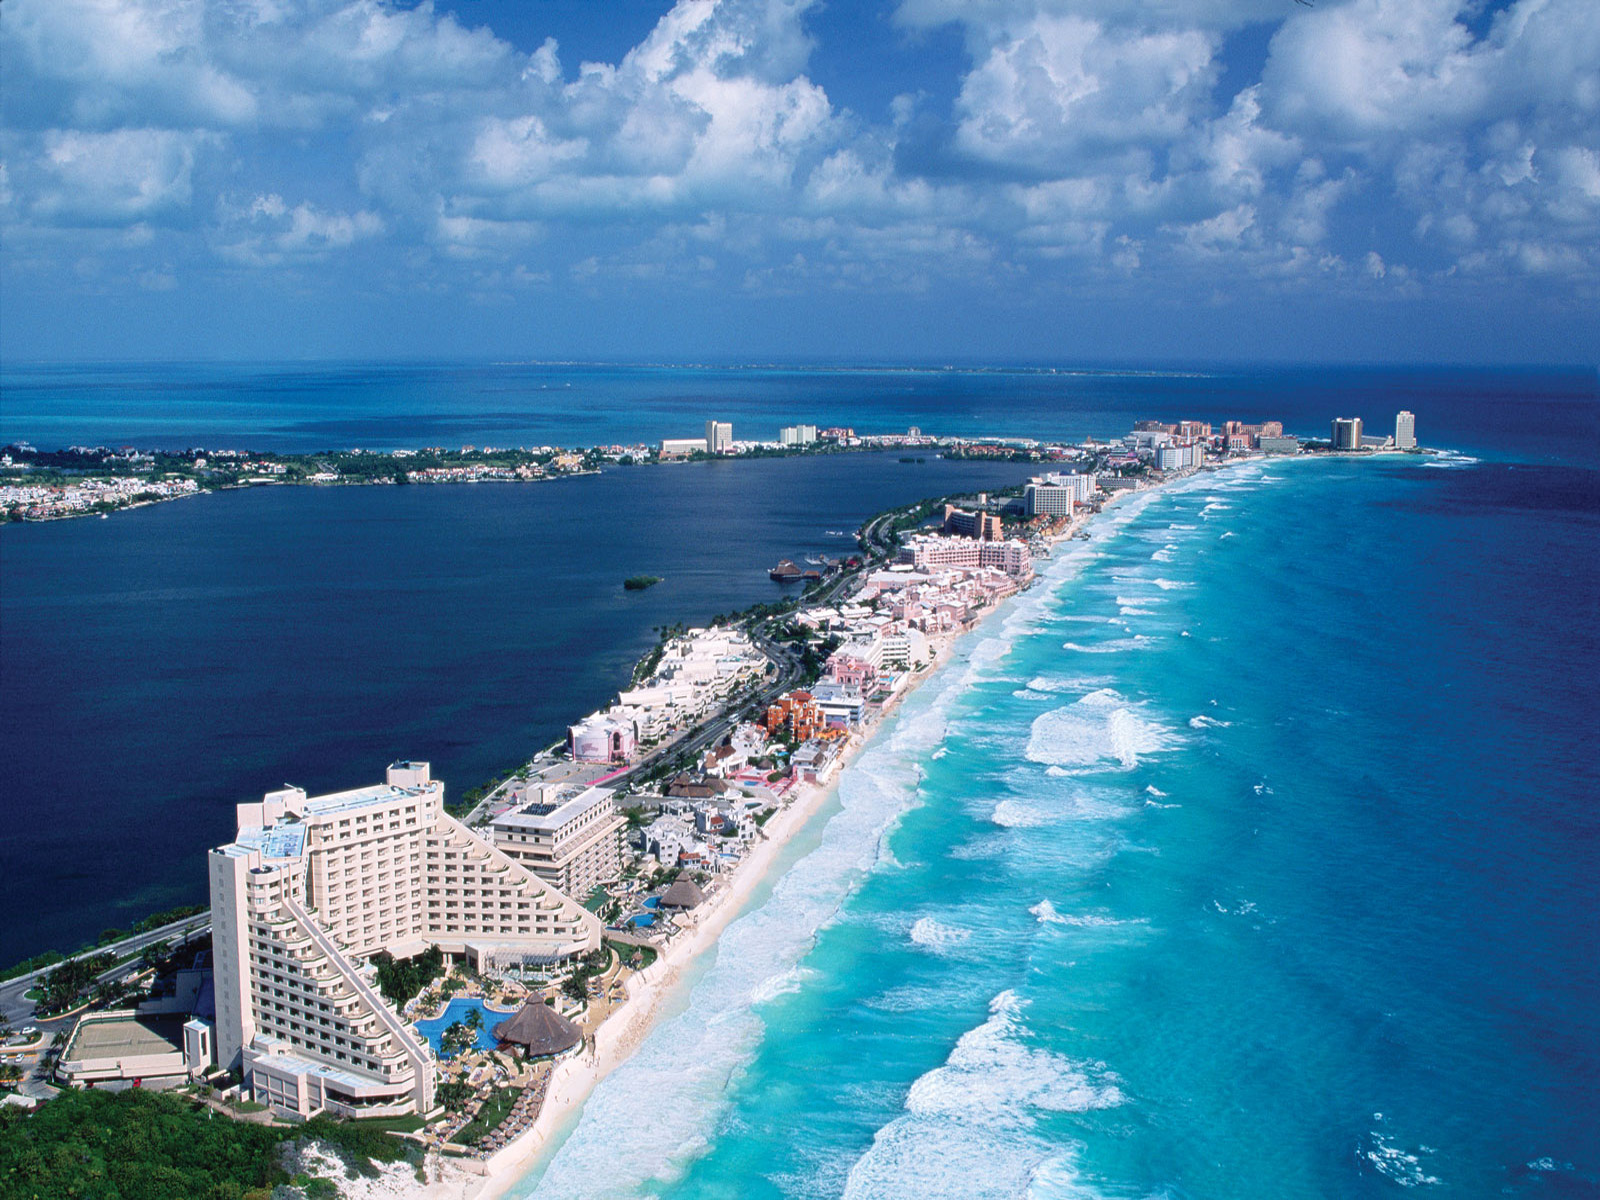 An aerial view of the Hotel Zone of Cancun, Mexico and the blue waters of the Gulf of Mexico. Hotels and tourist facilities crowd the narrow, 21-mile sandbar on the Yucatan coast, one of Mexico's most popular vacation spots. November 18, 1995 Cancun, Mexico